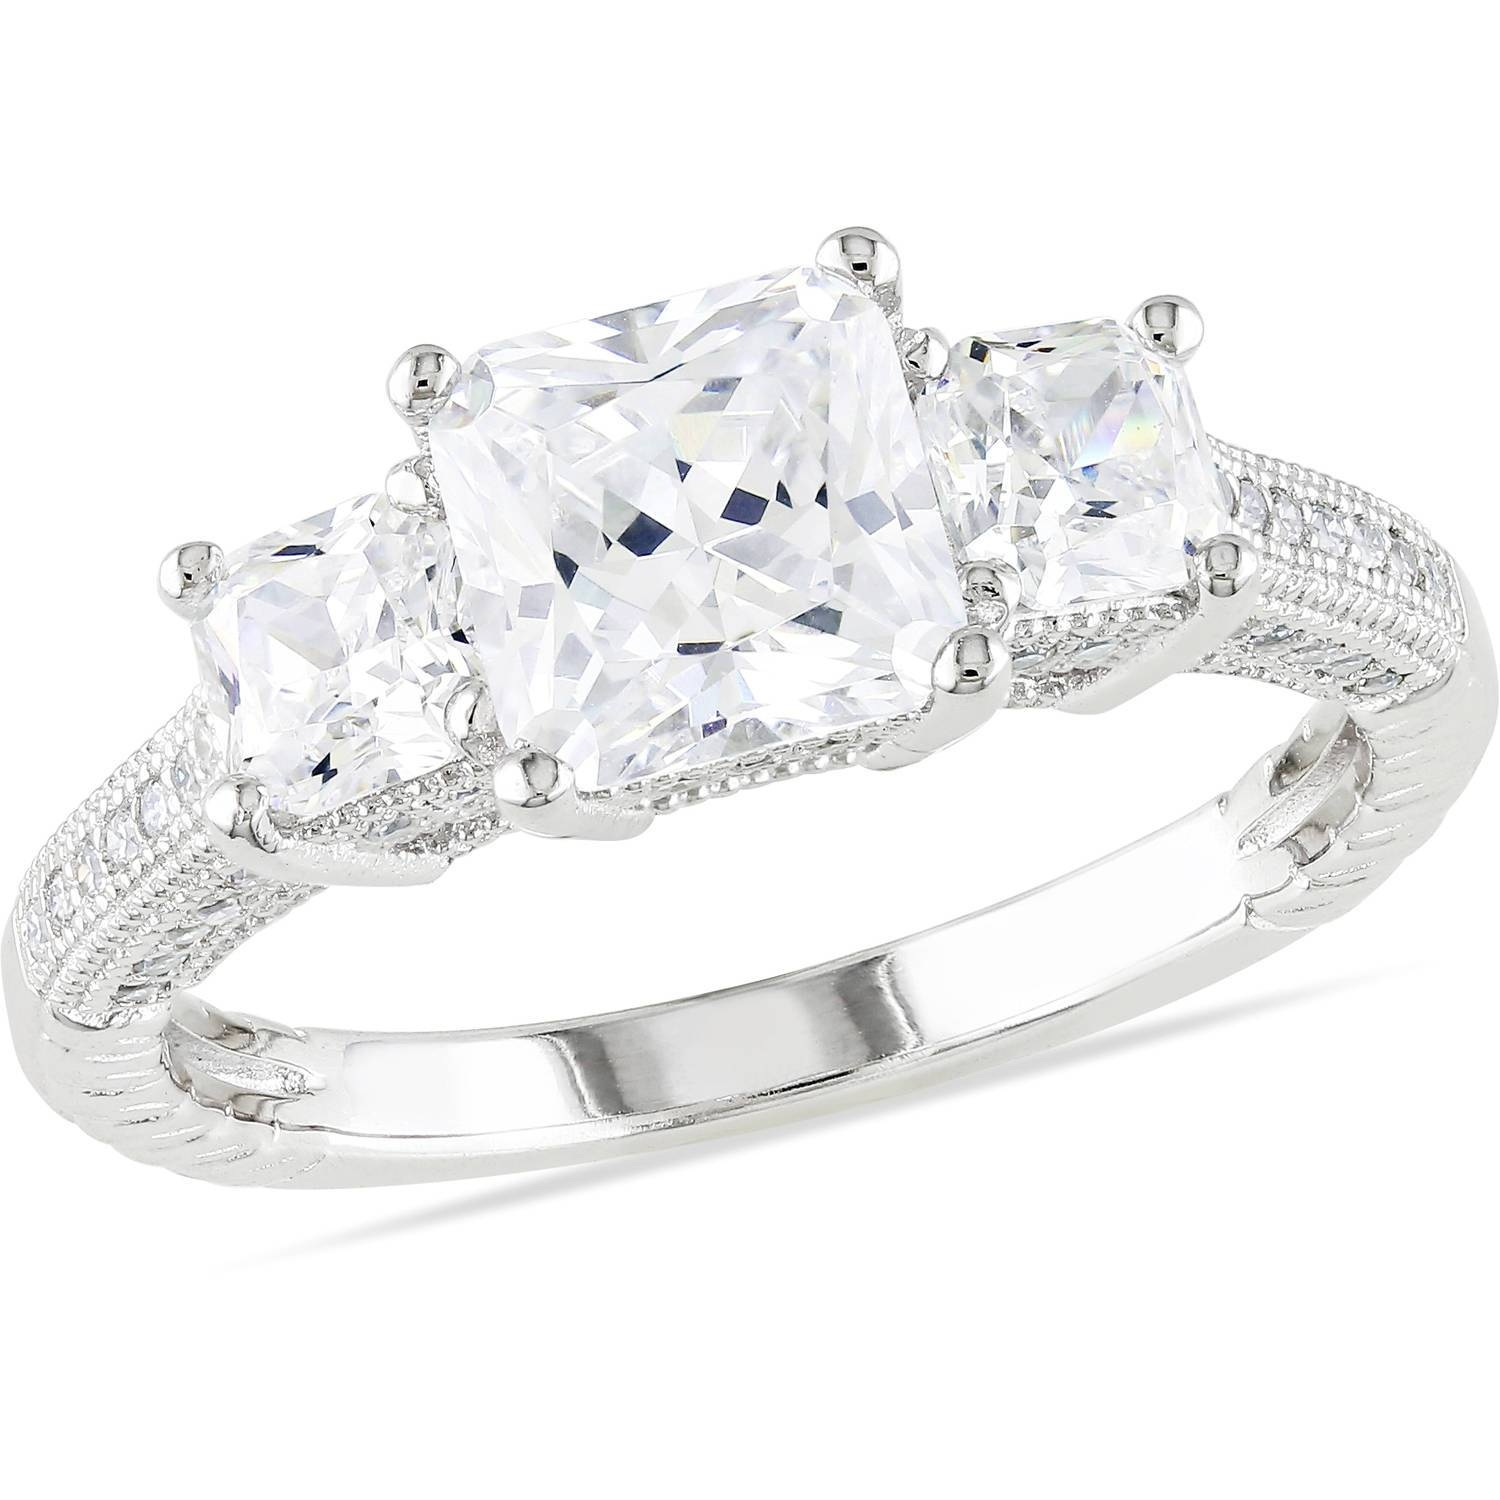 Miabella 5 1/6 Carat T.g.w. Square And Round Cut Cubic Zirconia Throughout Walmart Engagement Rings (Gallery 1 of 15)